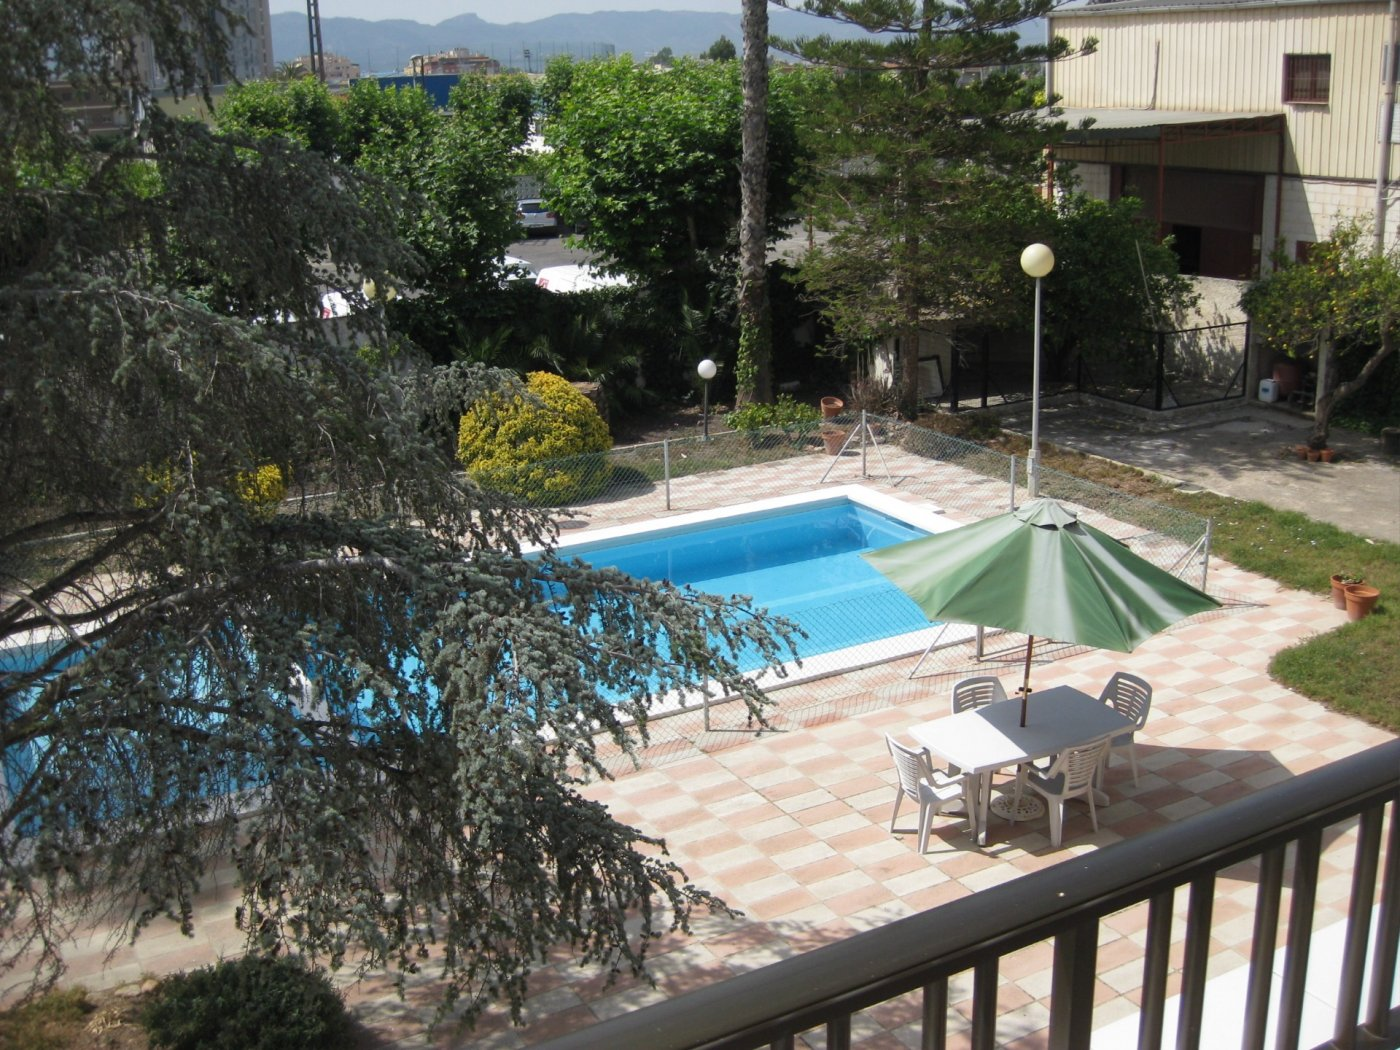 Casa con terreno ref 3265-02806 for sale in Espinardo Spain - Quality Homes Costa Cálida